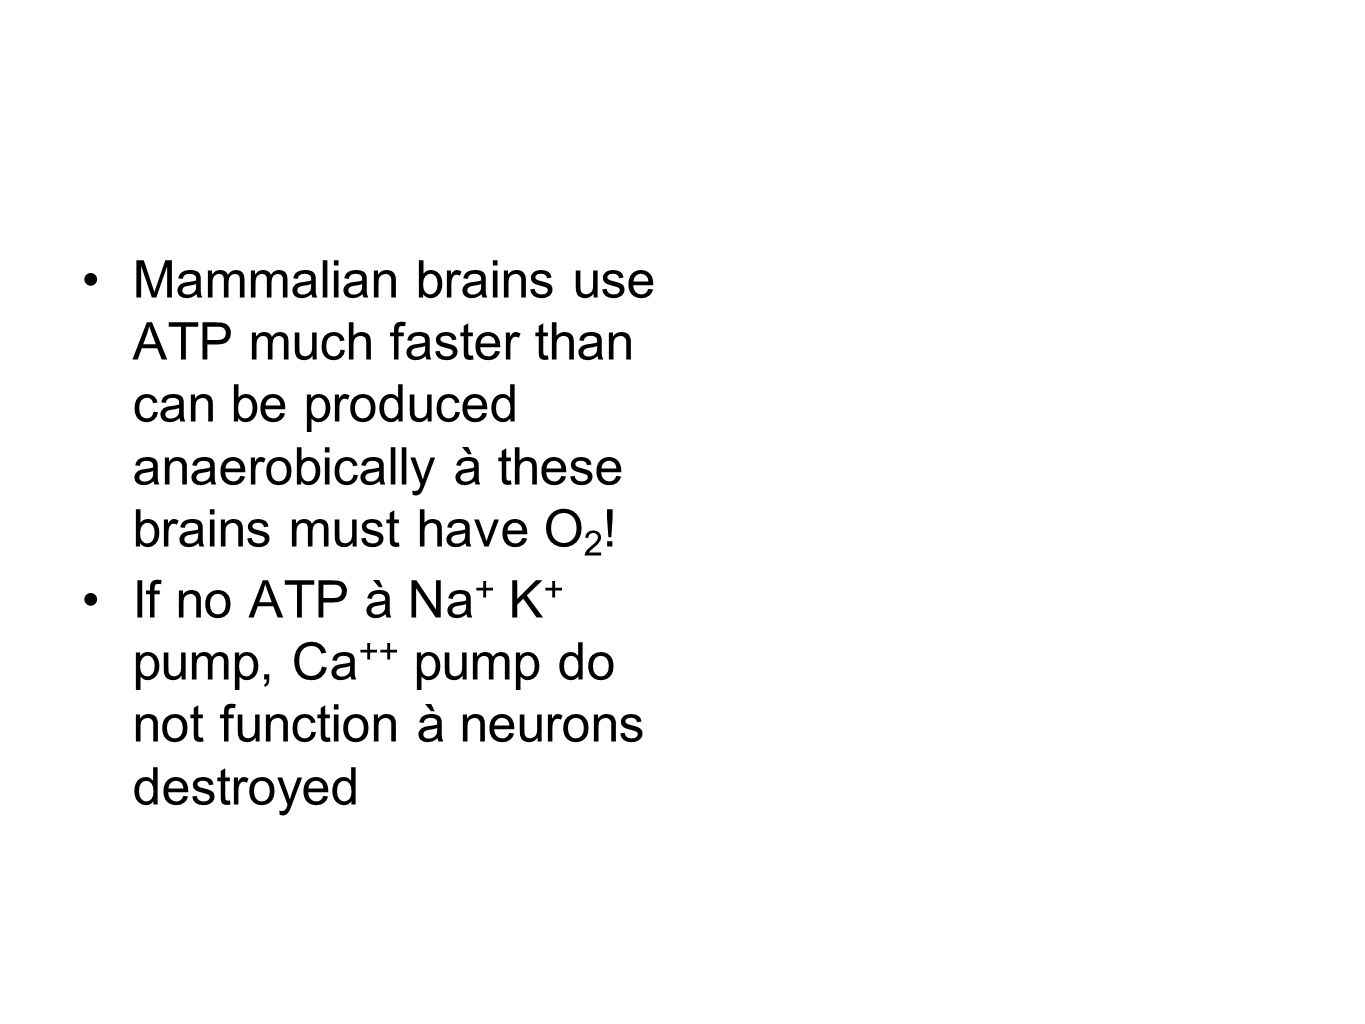 Mammalian brains use ATP much faster than can be produced anaerobically à these brains must have O2!